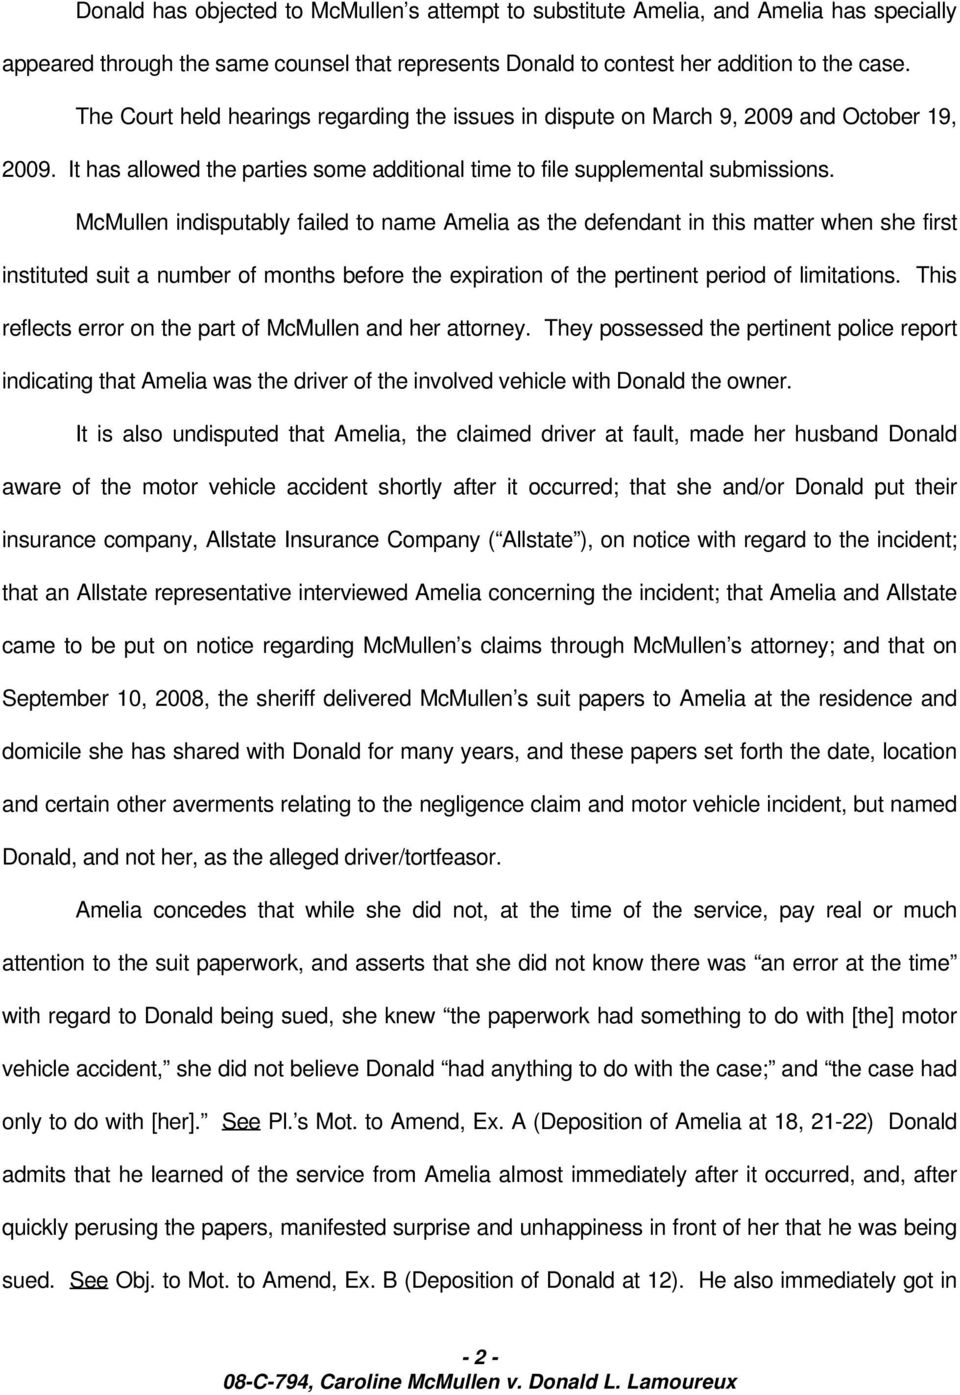 McMullen indisputably failed to name Amelia as the defendant in this matter when she first instituted suit a number of months before the expiration of the pertinent period of limitations.